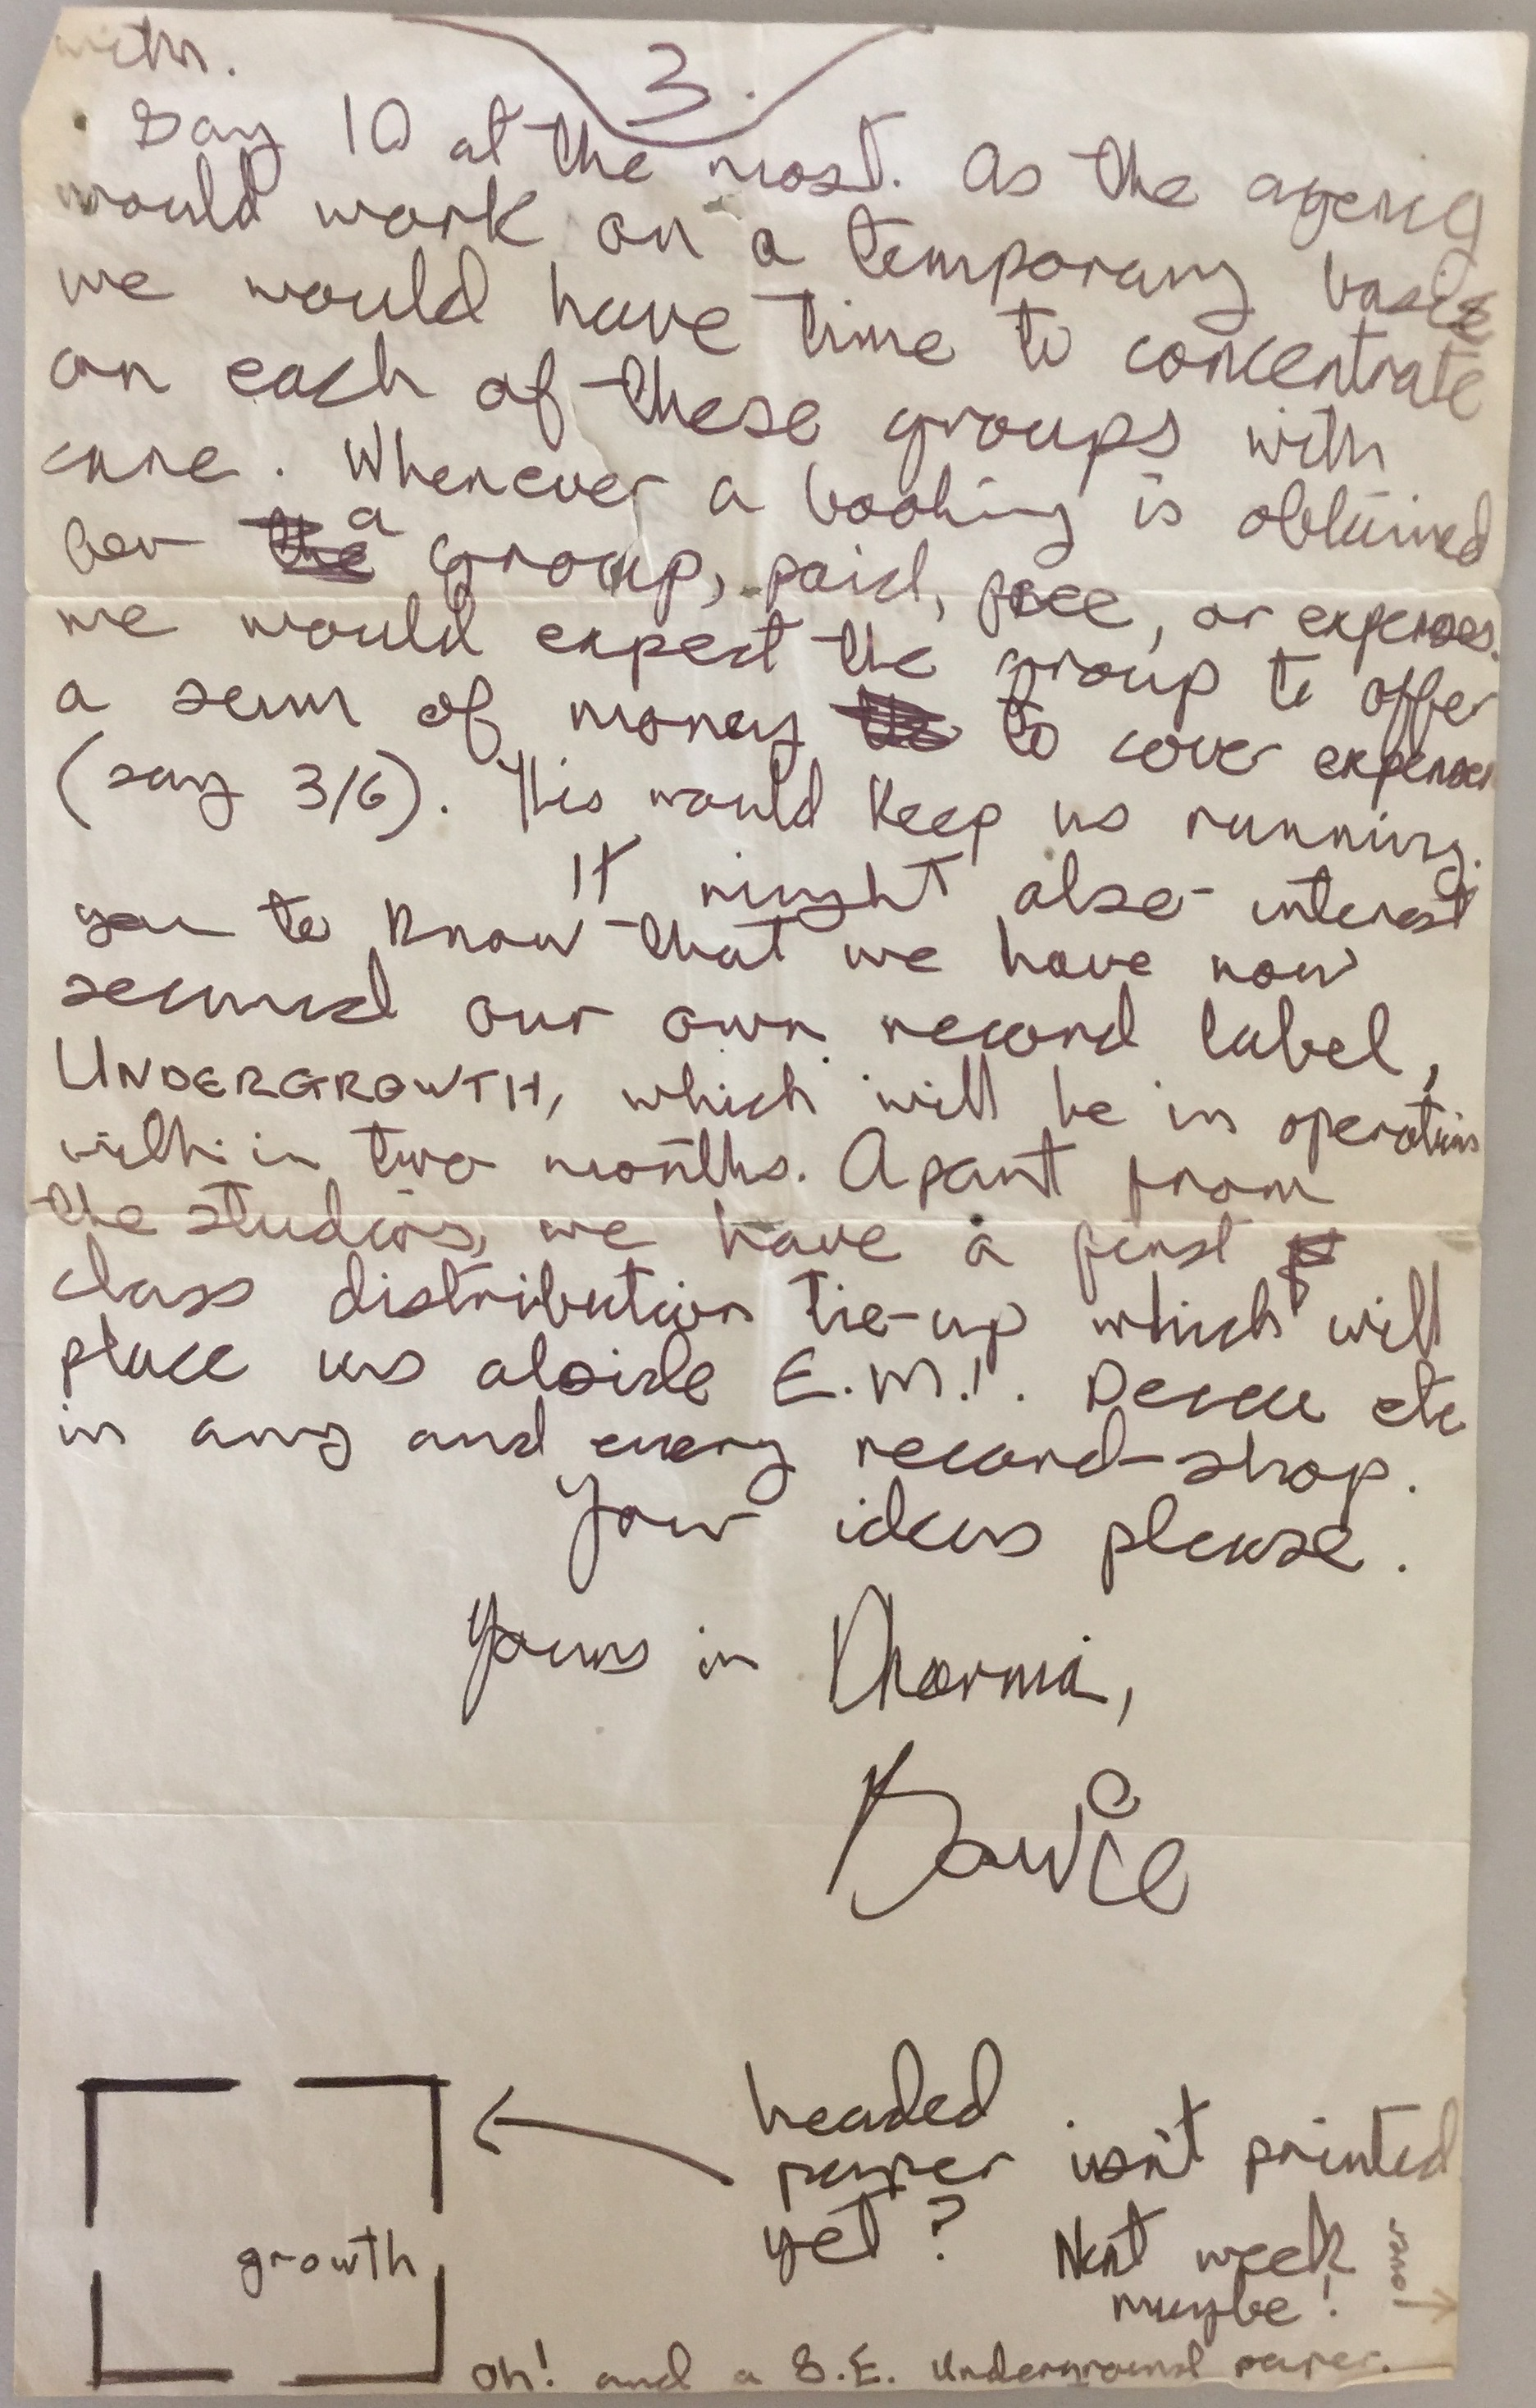 Lot 351 - DAVID BOWIE 4 PAGE HANDWRITTEN LETTER FROM 1969.